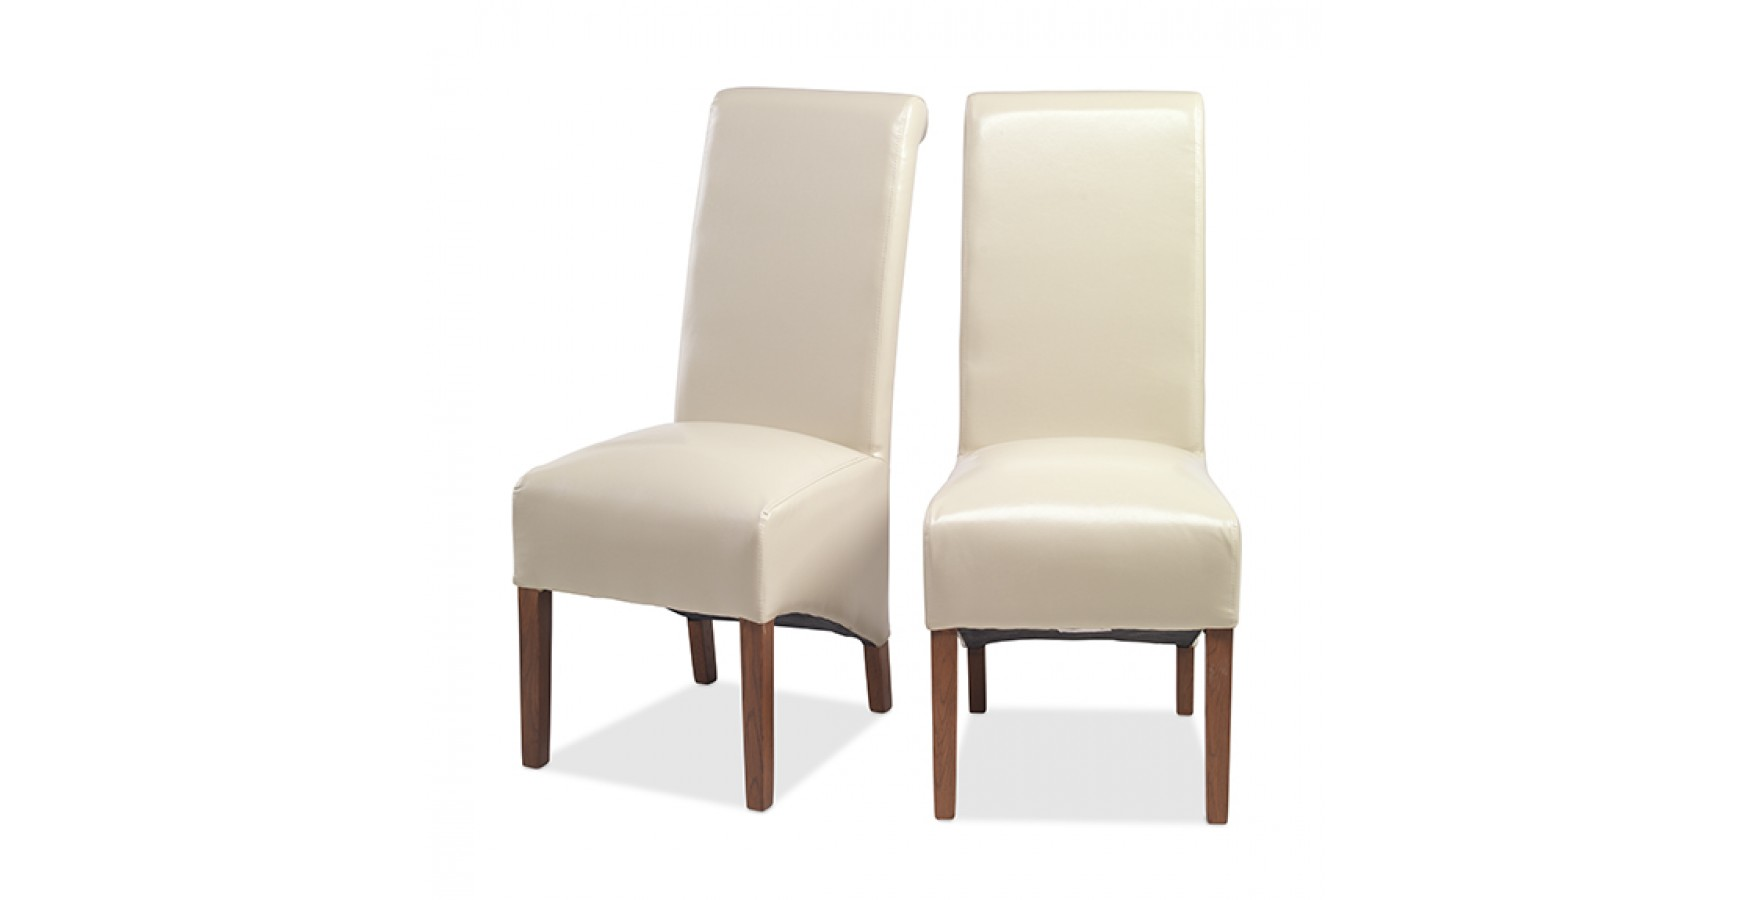 Cuba Bonded Leather Dining Chairs Beige Pair Lifestyle